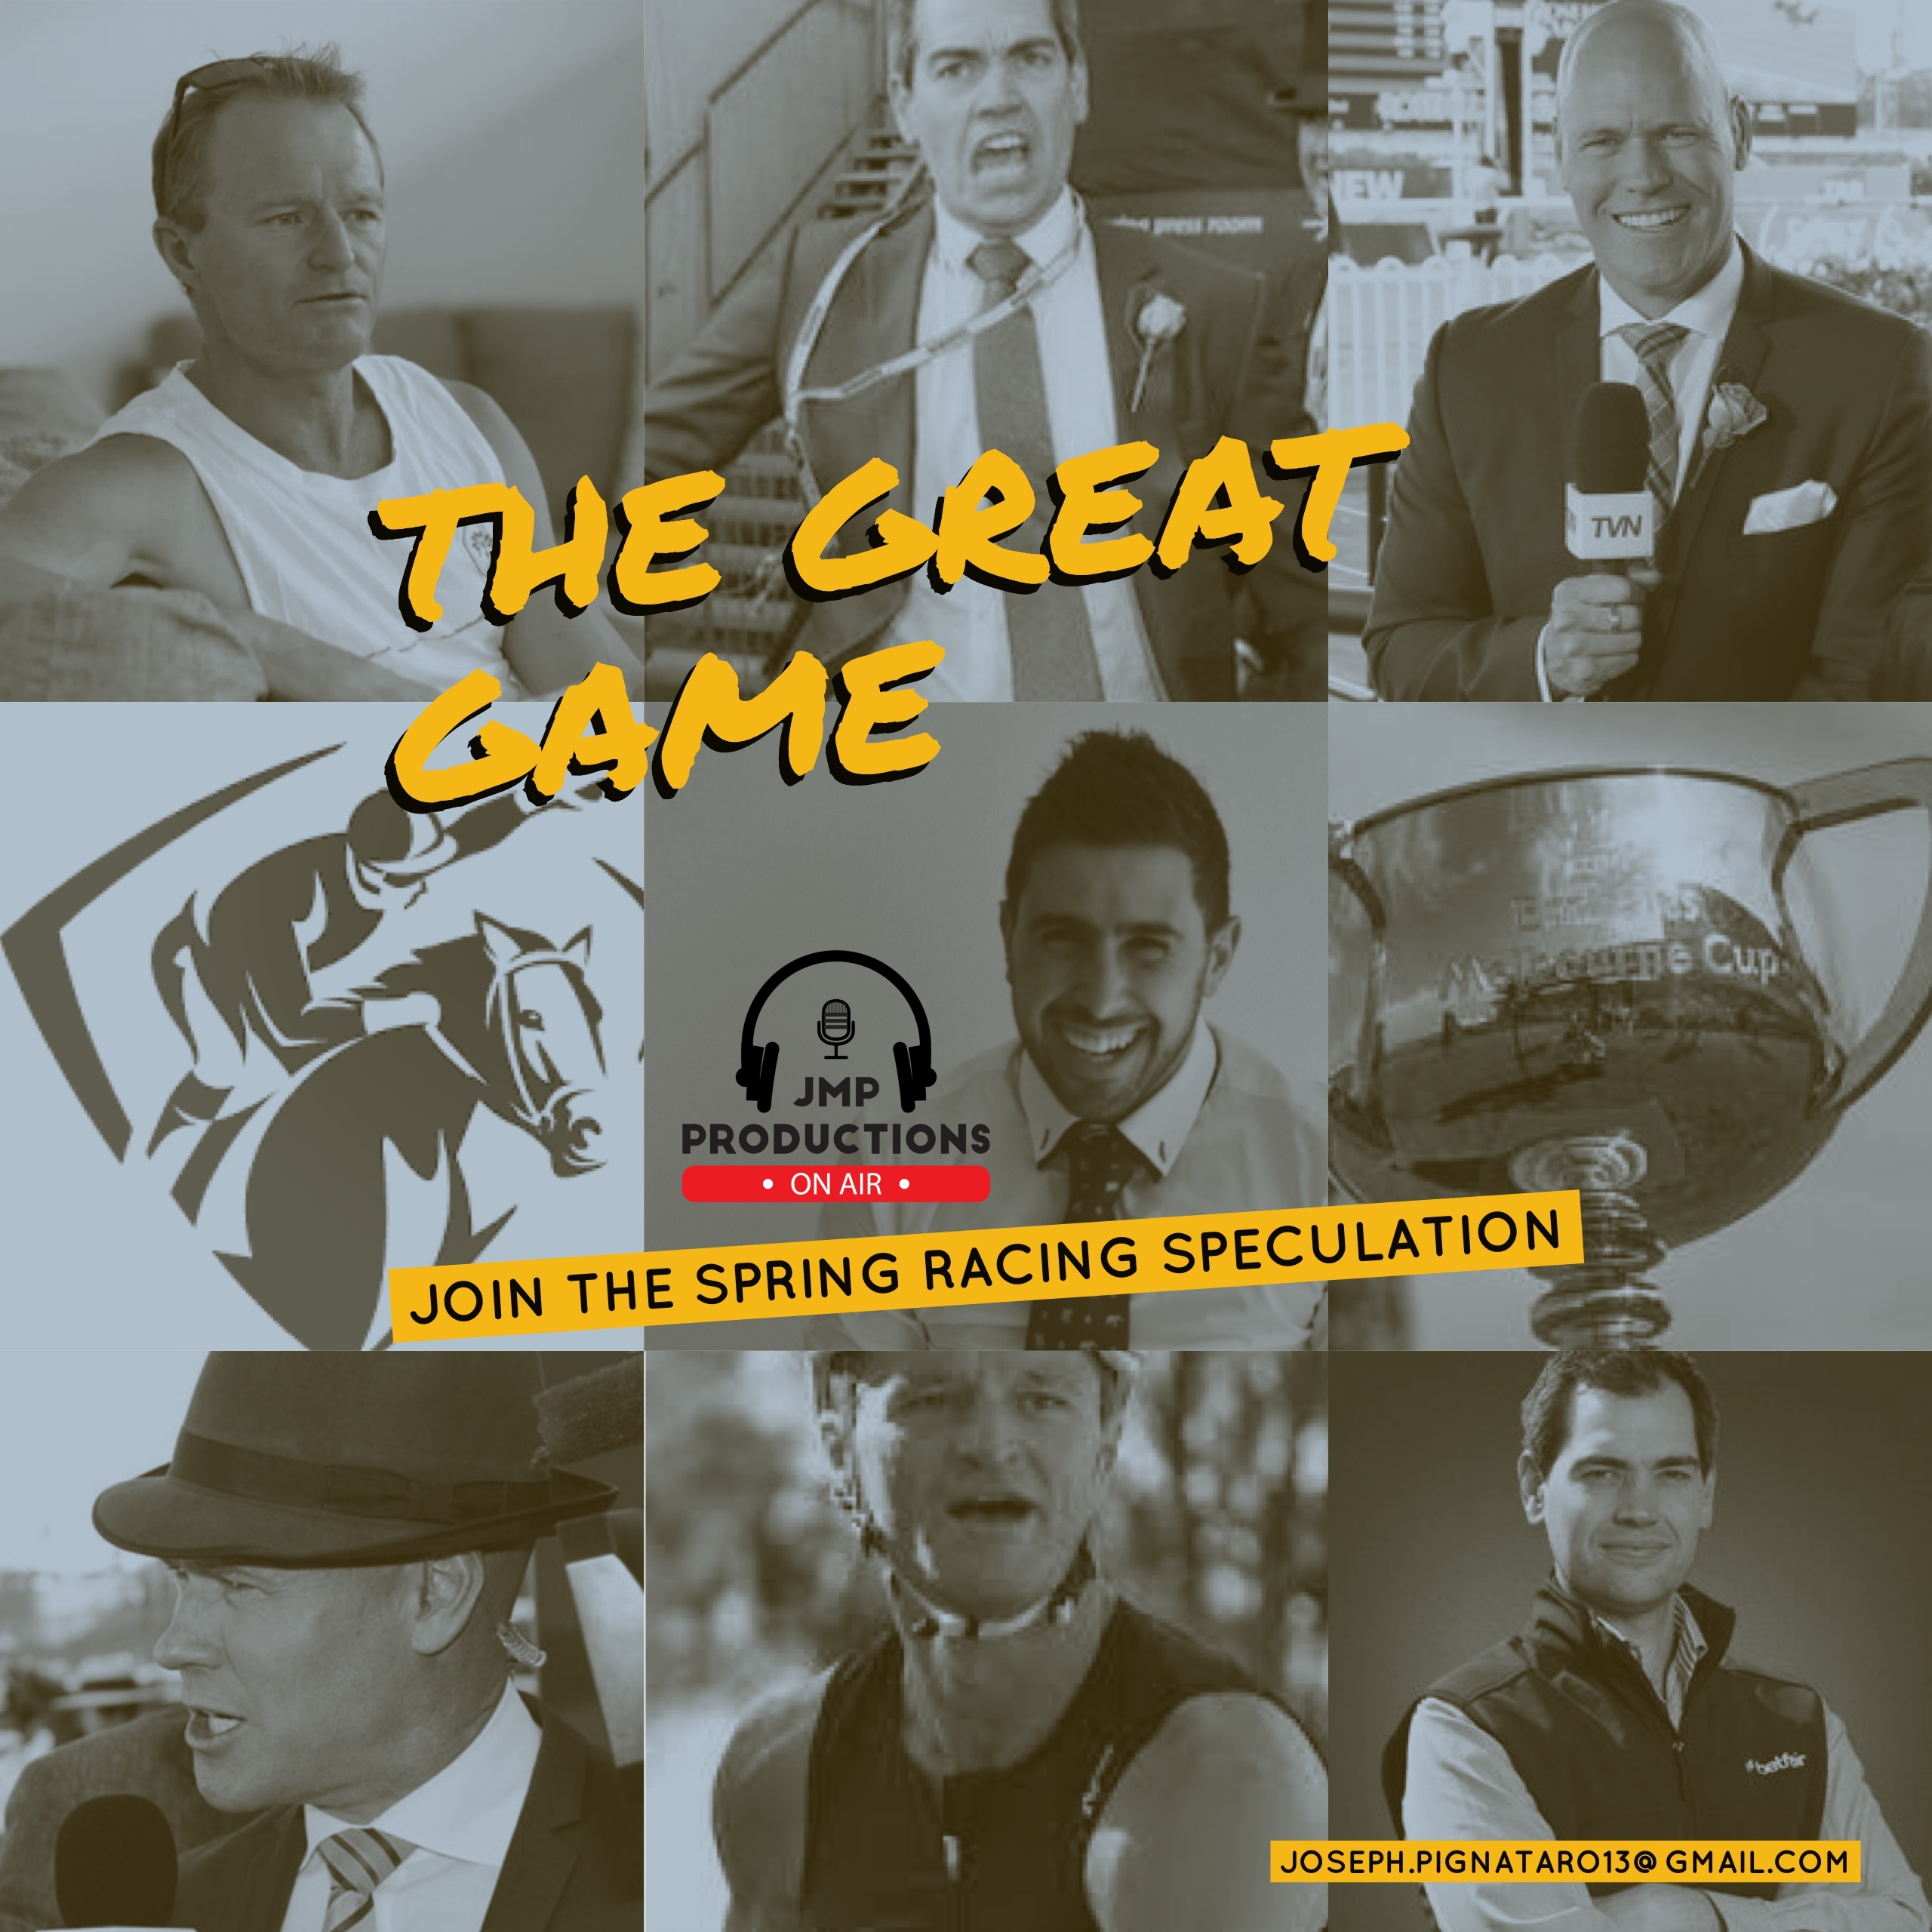 Episode 17 - The Great Game (April 11, 2019)